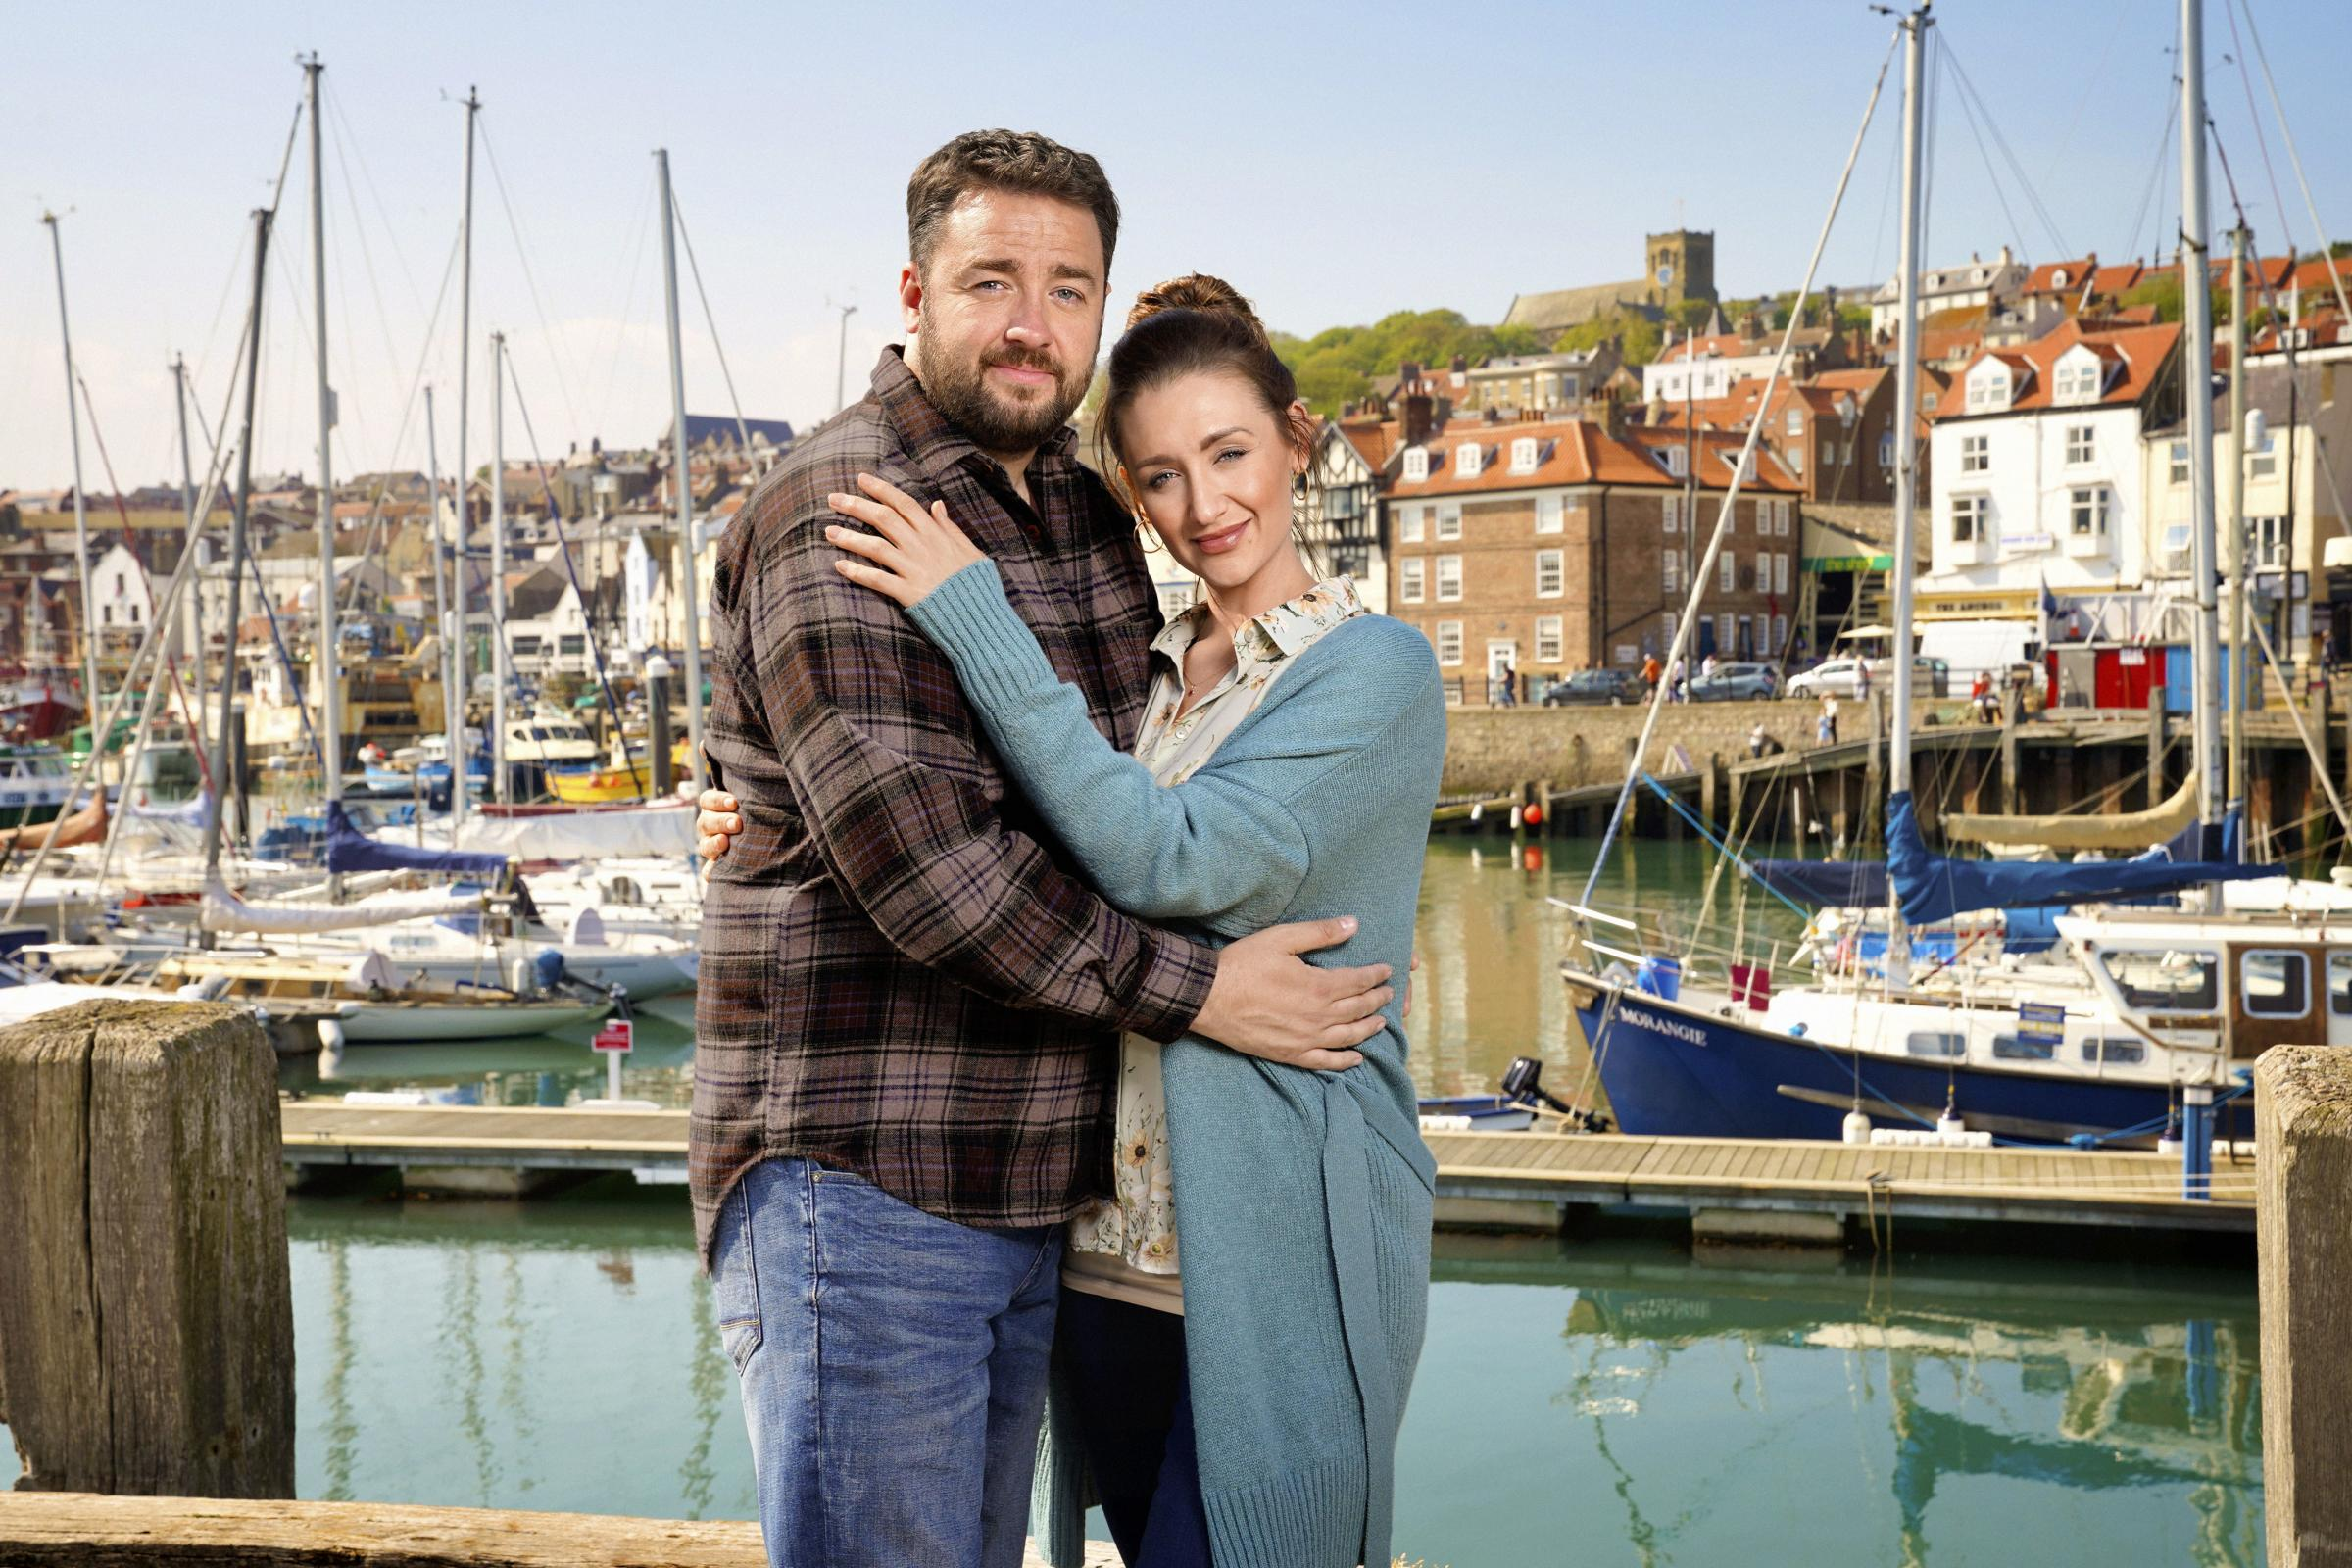 Should TV's Scarborough and Emmerdale make more effort to portray Yorkshire accents?